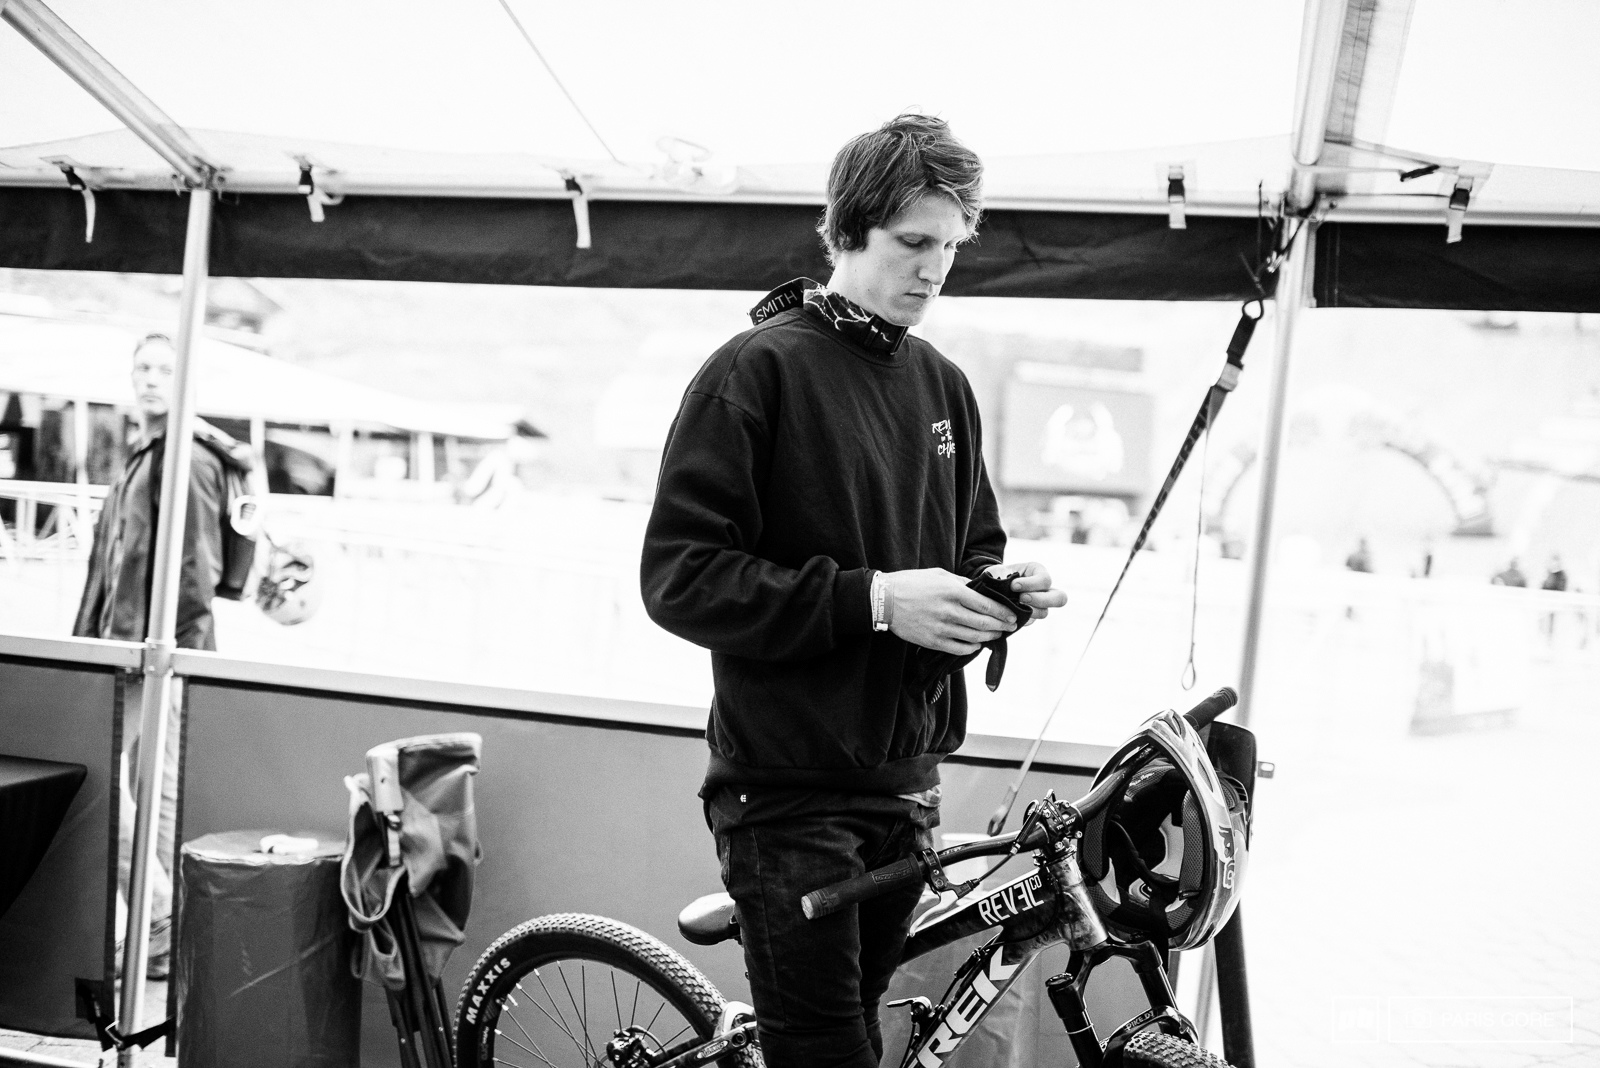 Brandon Semenuk getting ready to head up for an early practice.